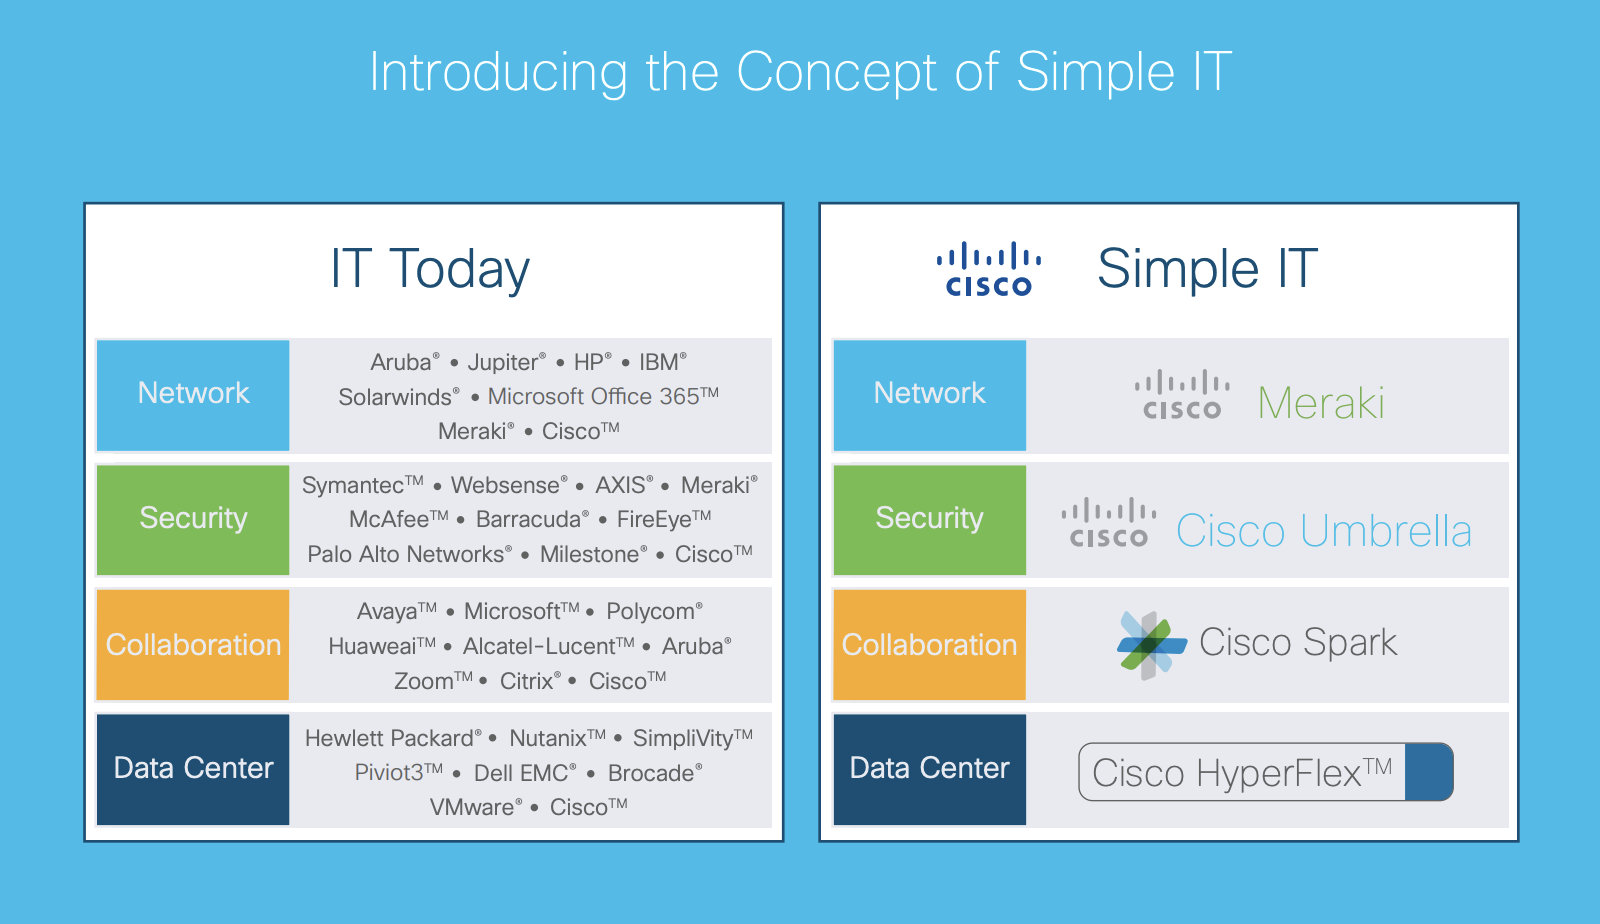 Cisco Simple IT